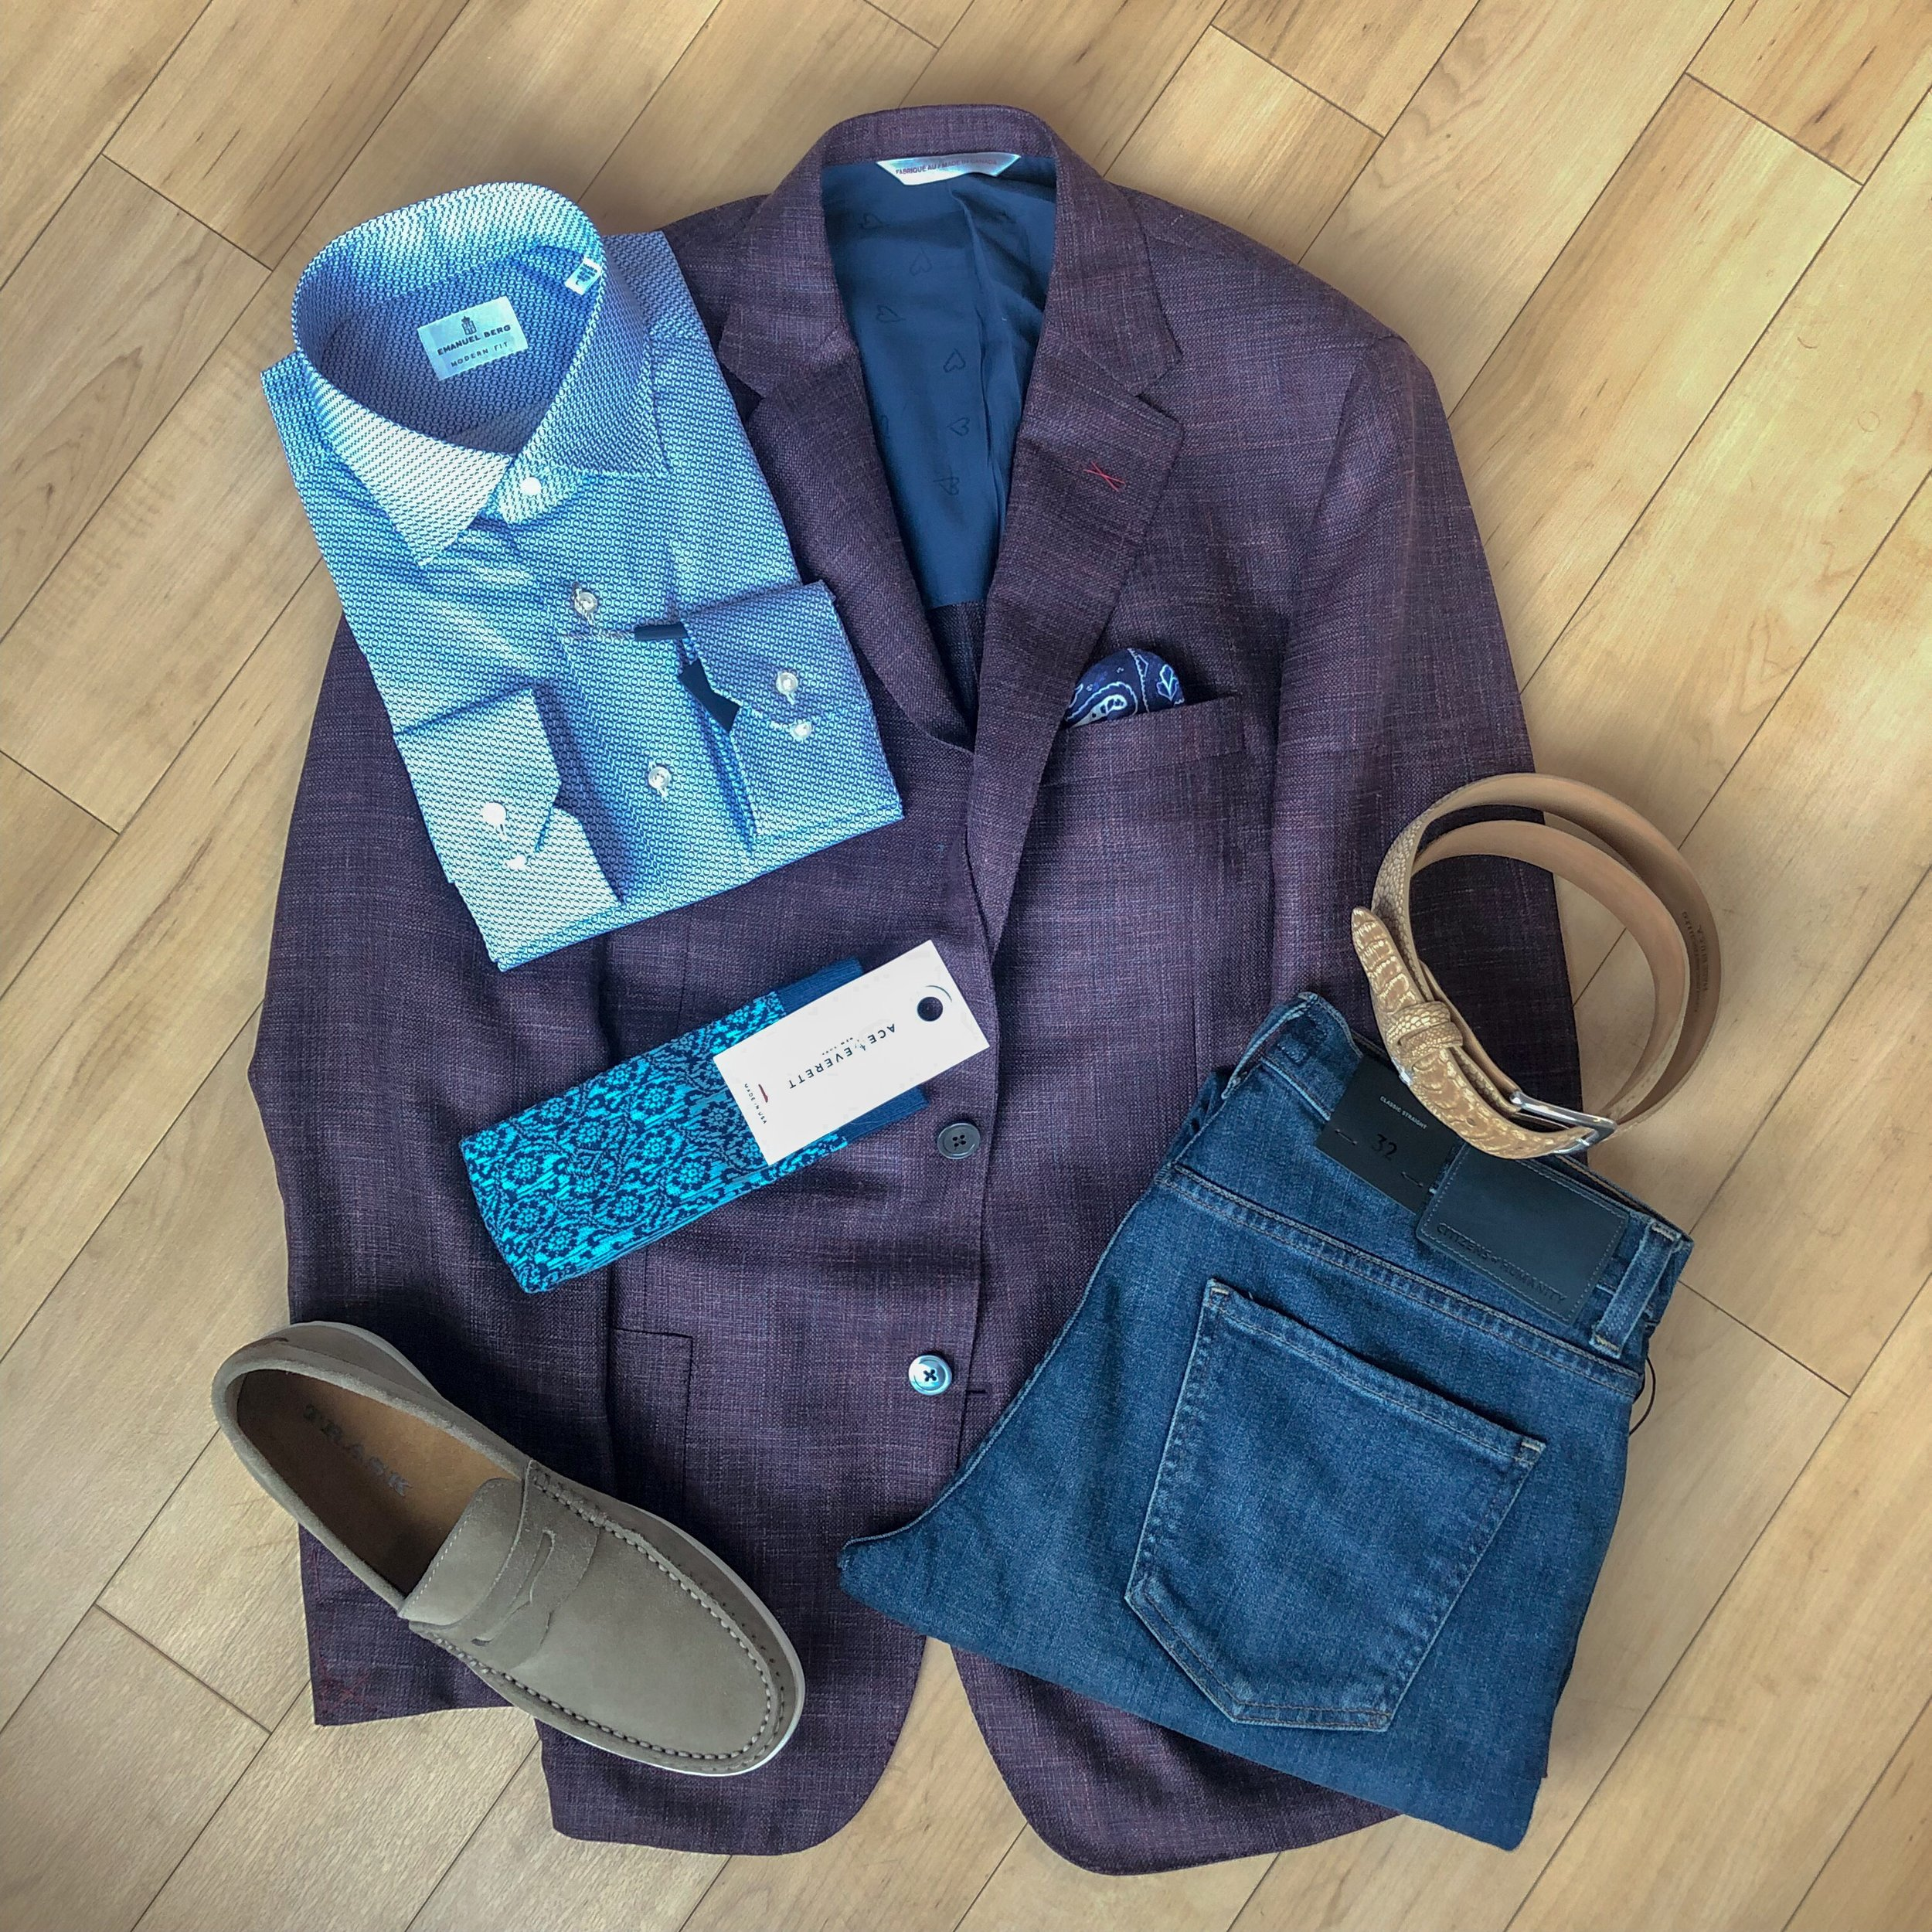 Weekend Denim Elegance - Light or washed denim go just as well with a sport coat, though we suggest one with a more deconstructed nature. Wear Citizens of Humanity jeans with an Emanuel Berg print shirt and a pair of Trask suede loafers and you're sure to be the best dressed at Sunday brunch.